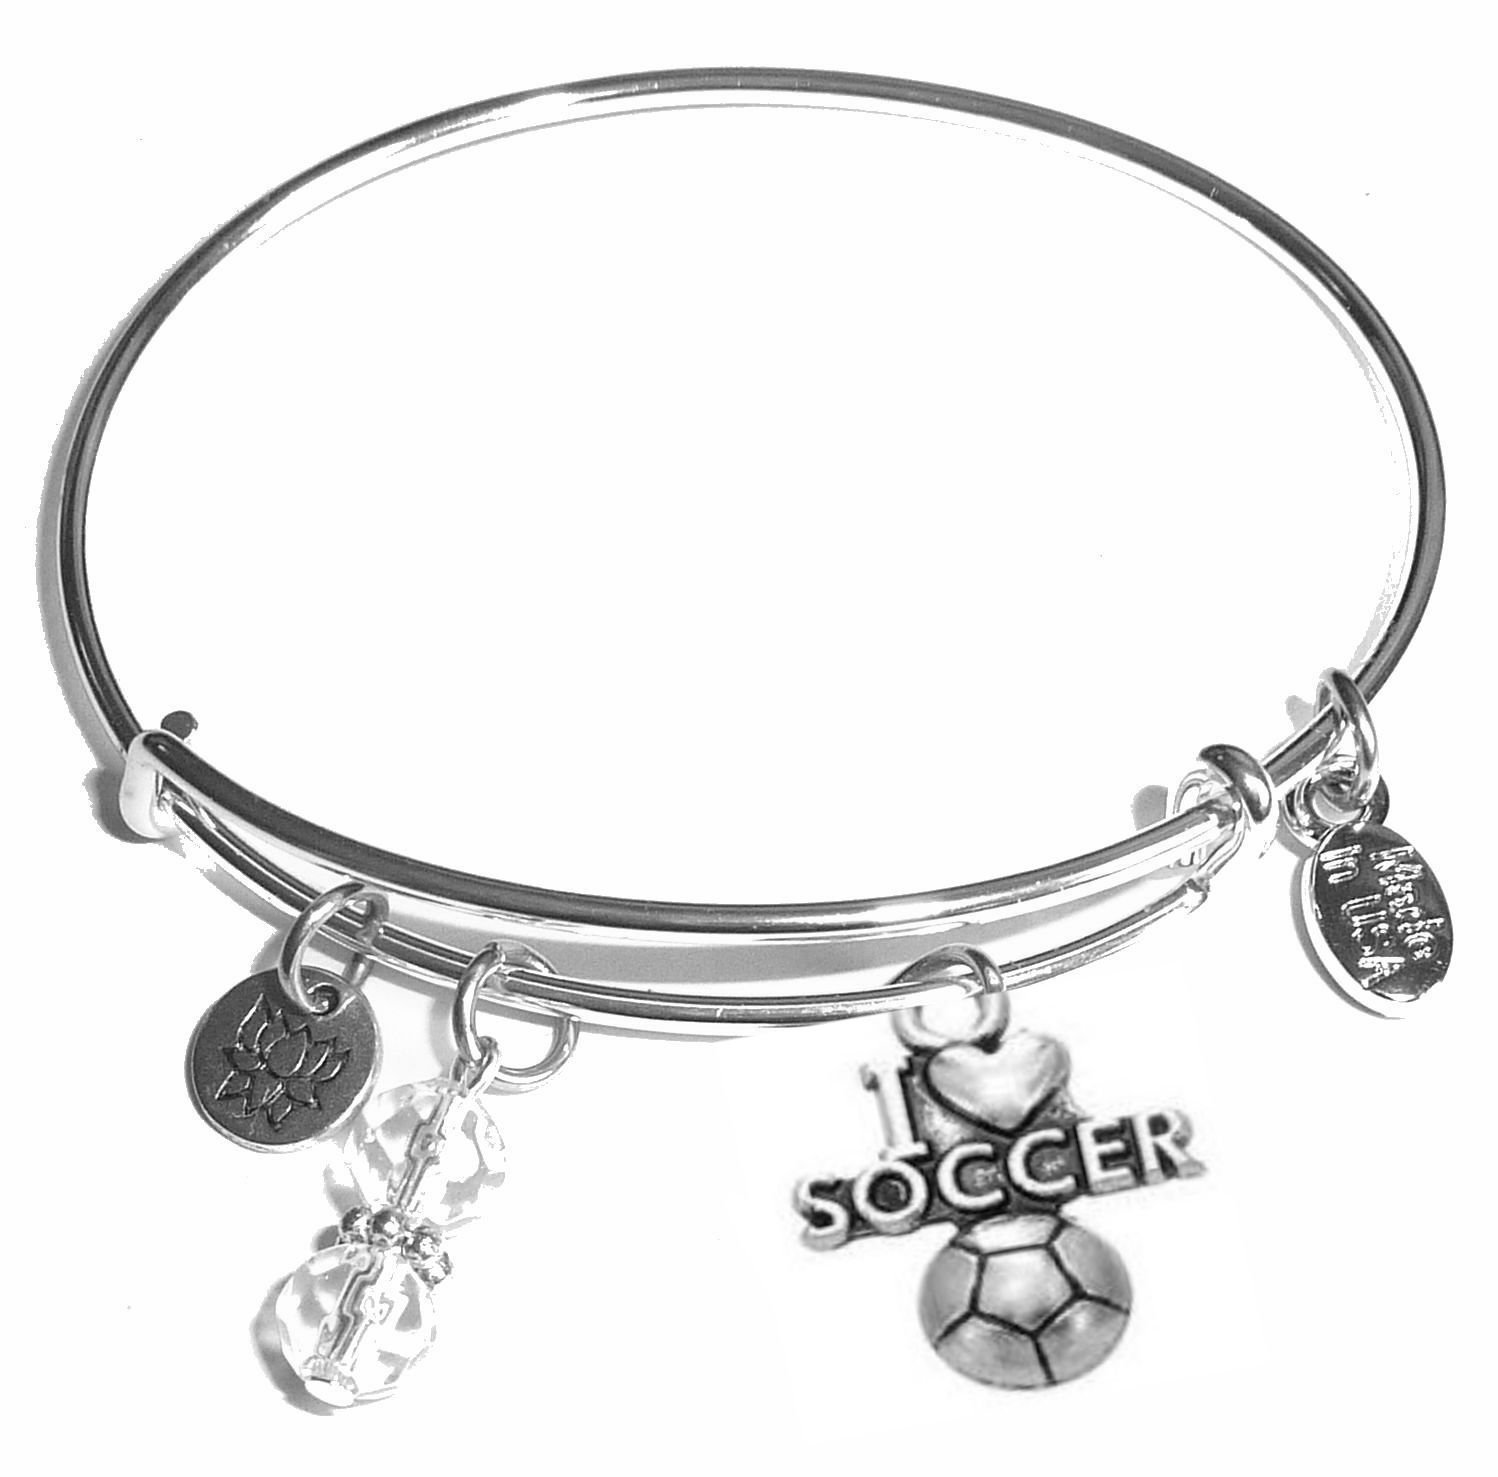 Message Charm (46 words to choose from) Expandable Wire Bangle Bracelet, in the popular style, COMES IN A GIFT BOX! (I Love Soccer)